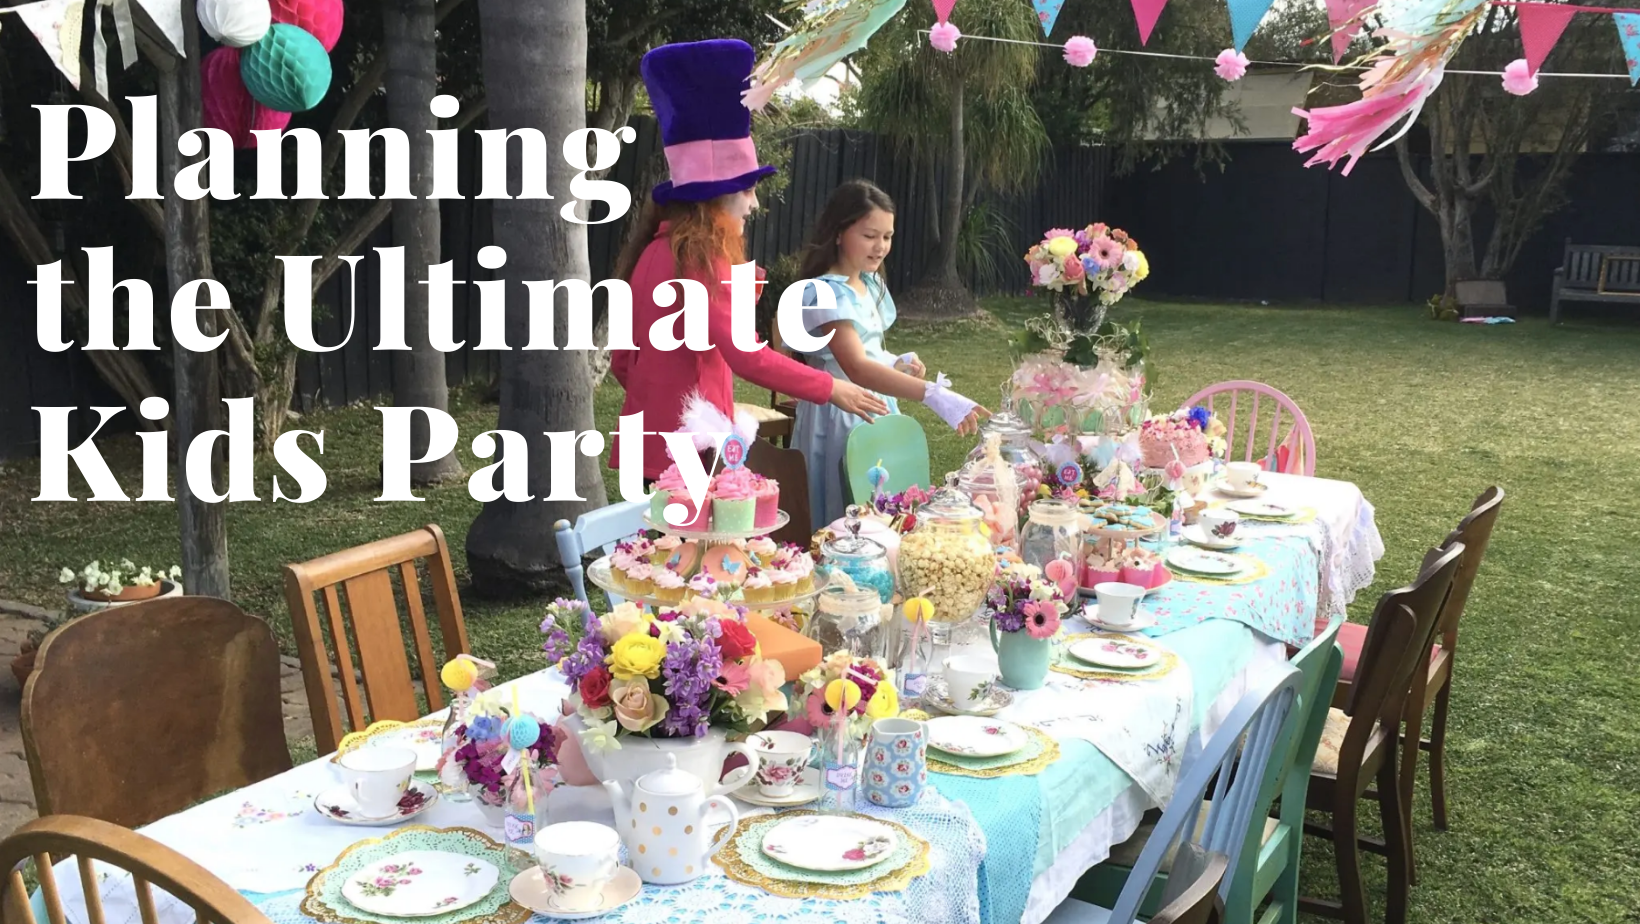 How to plan the Ultimate Kids Party